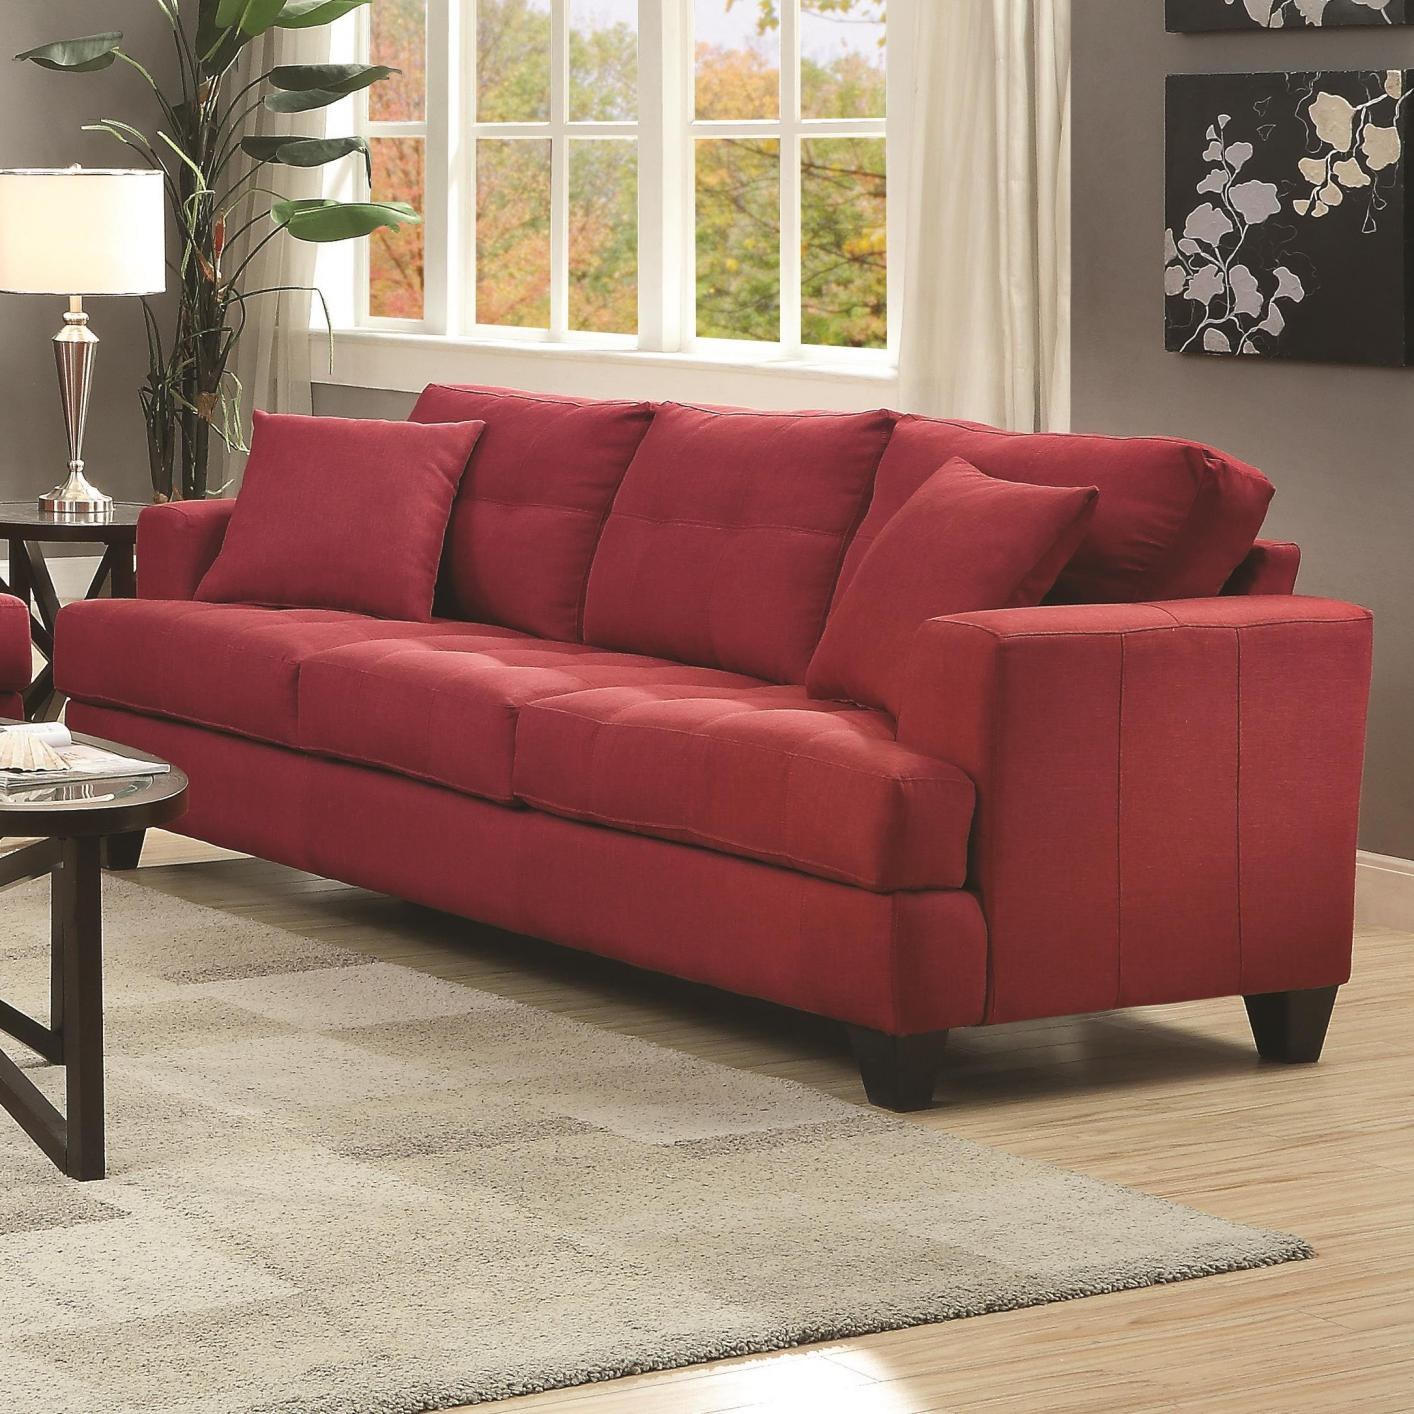 red fabric sofa gray sectional wayfair steal a furniture outlet los angeles ca